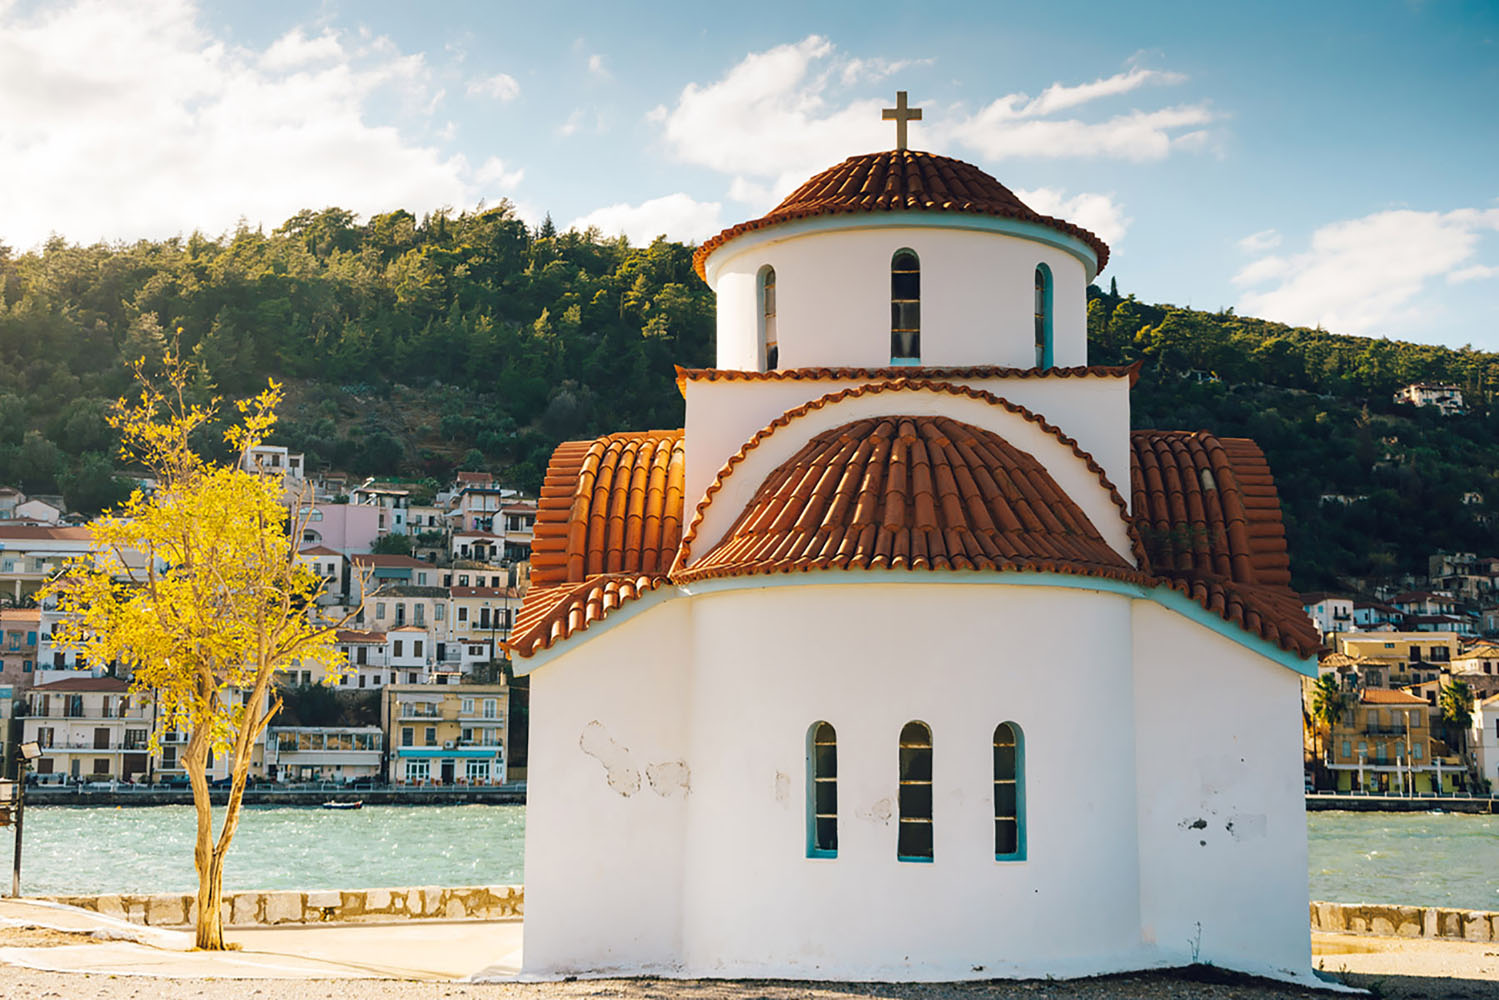 Church of Agios Petros, Gythion, Greece